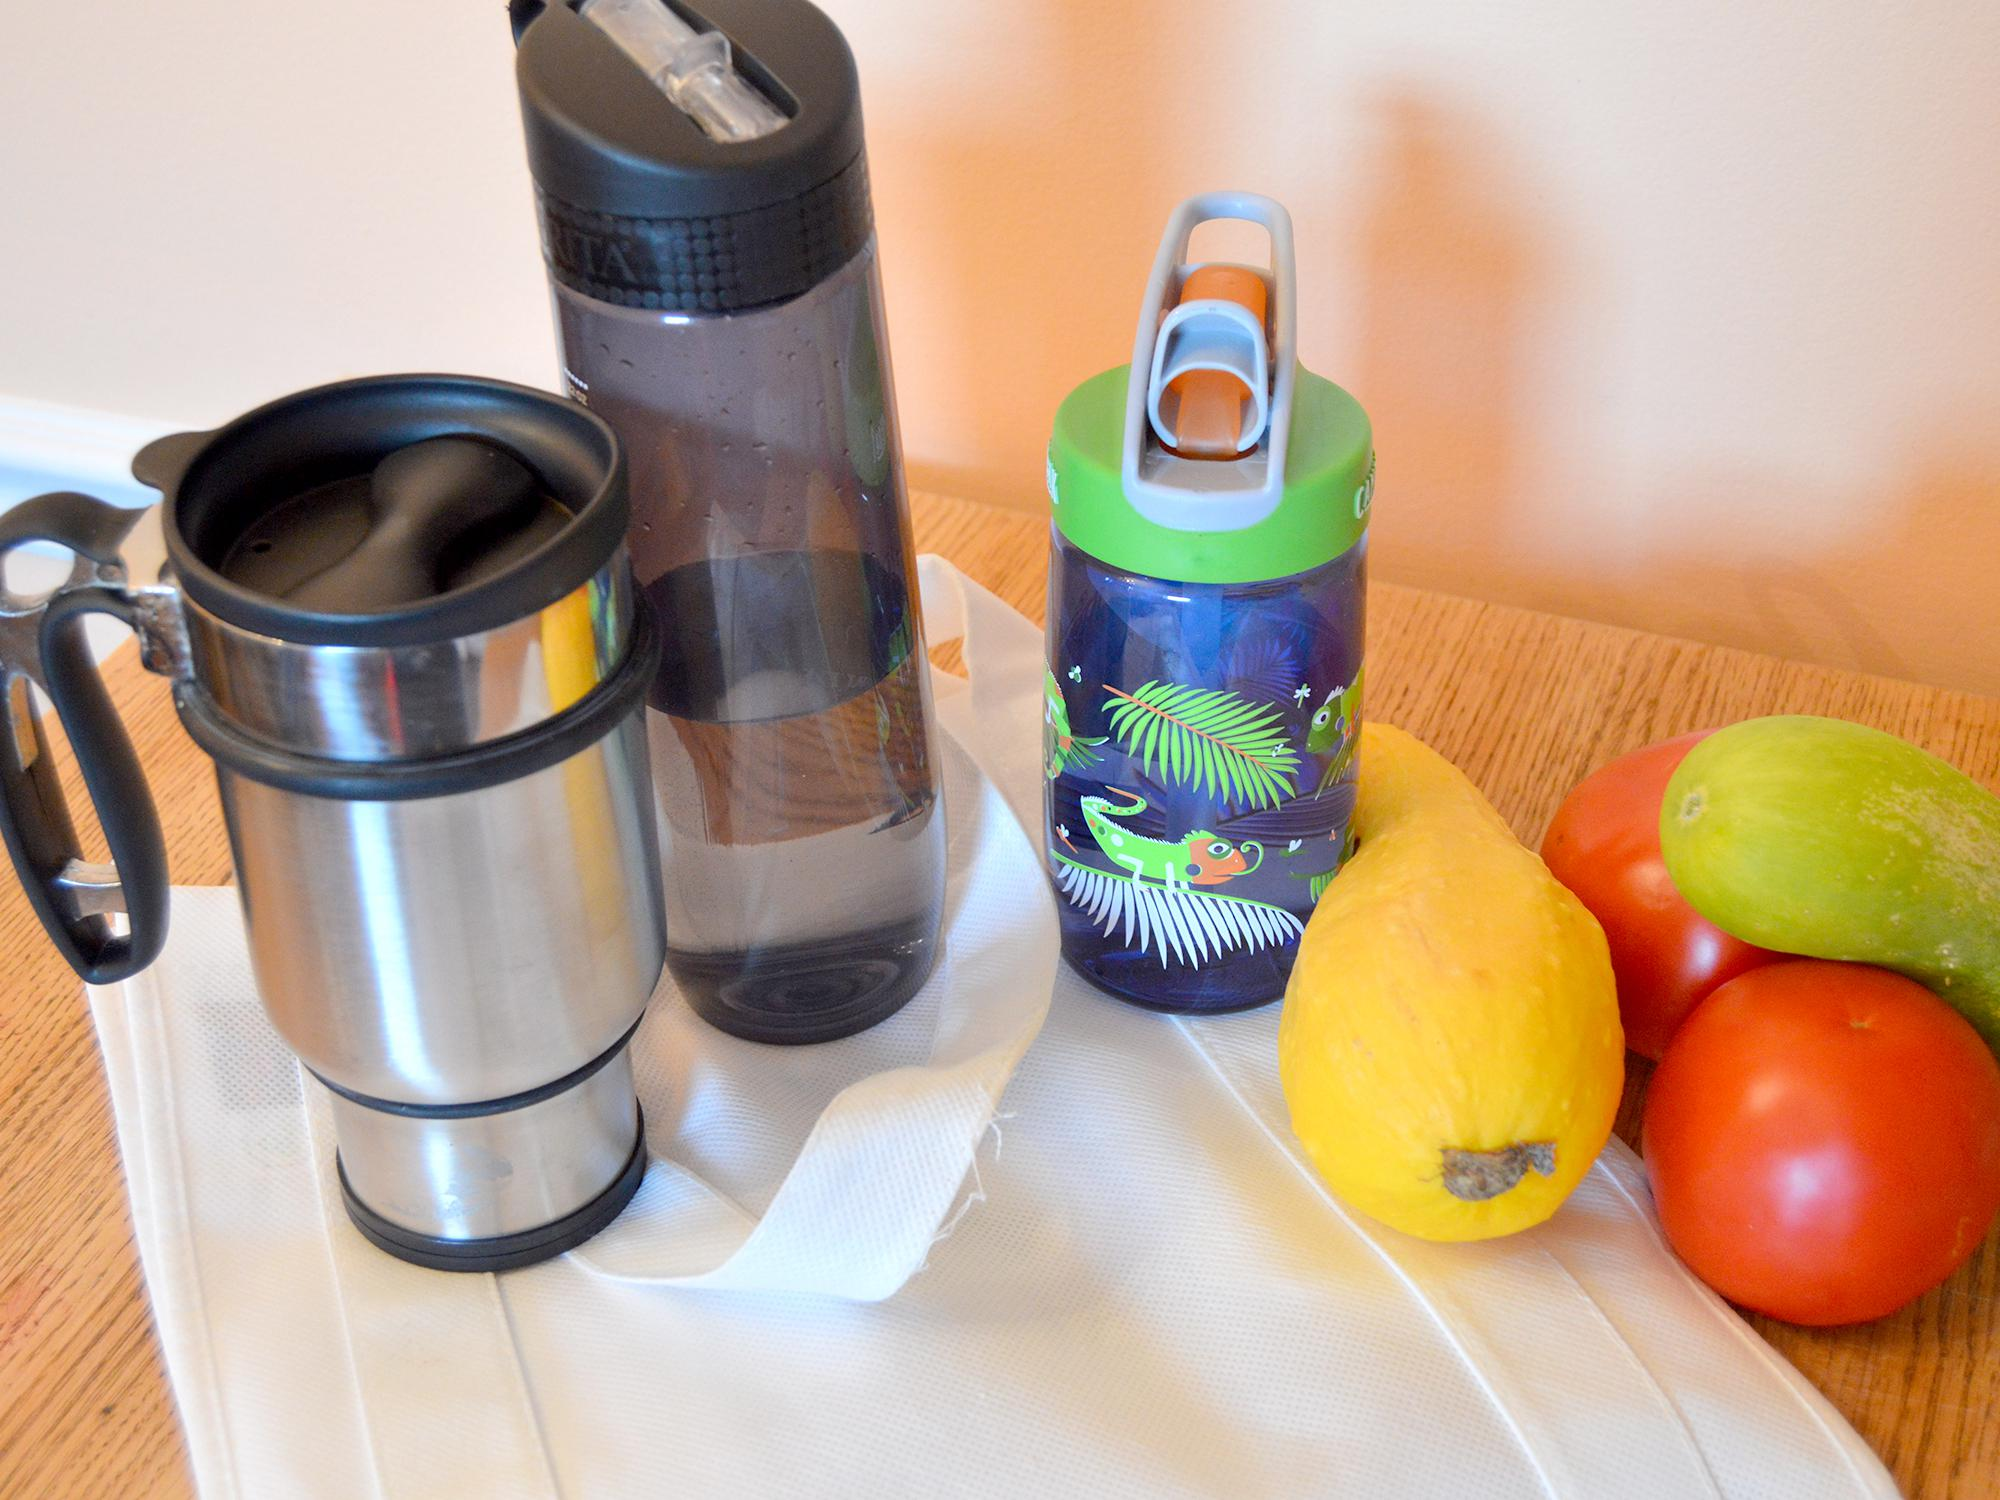 """Using reusable products and eating unprocessed foods are good for the environment and simple steps along the path in the """"going green"""" journey. (Photo by MSU Extension Service/Beth Baker)"""